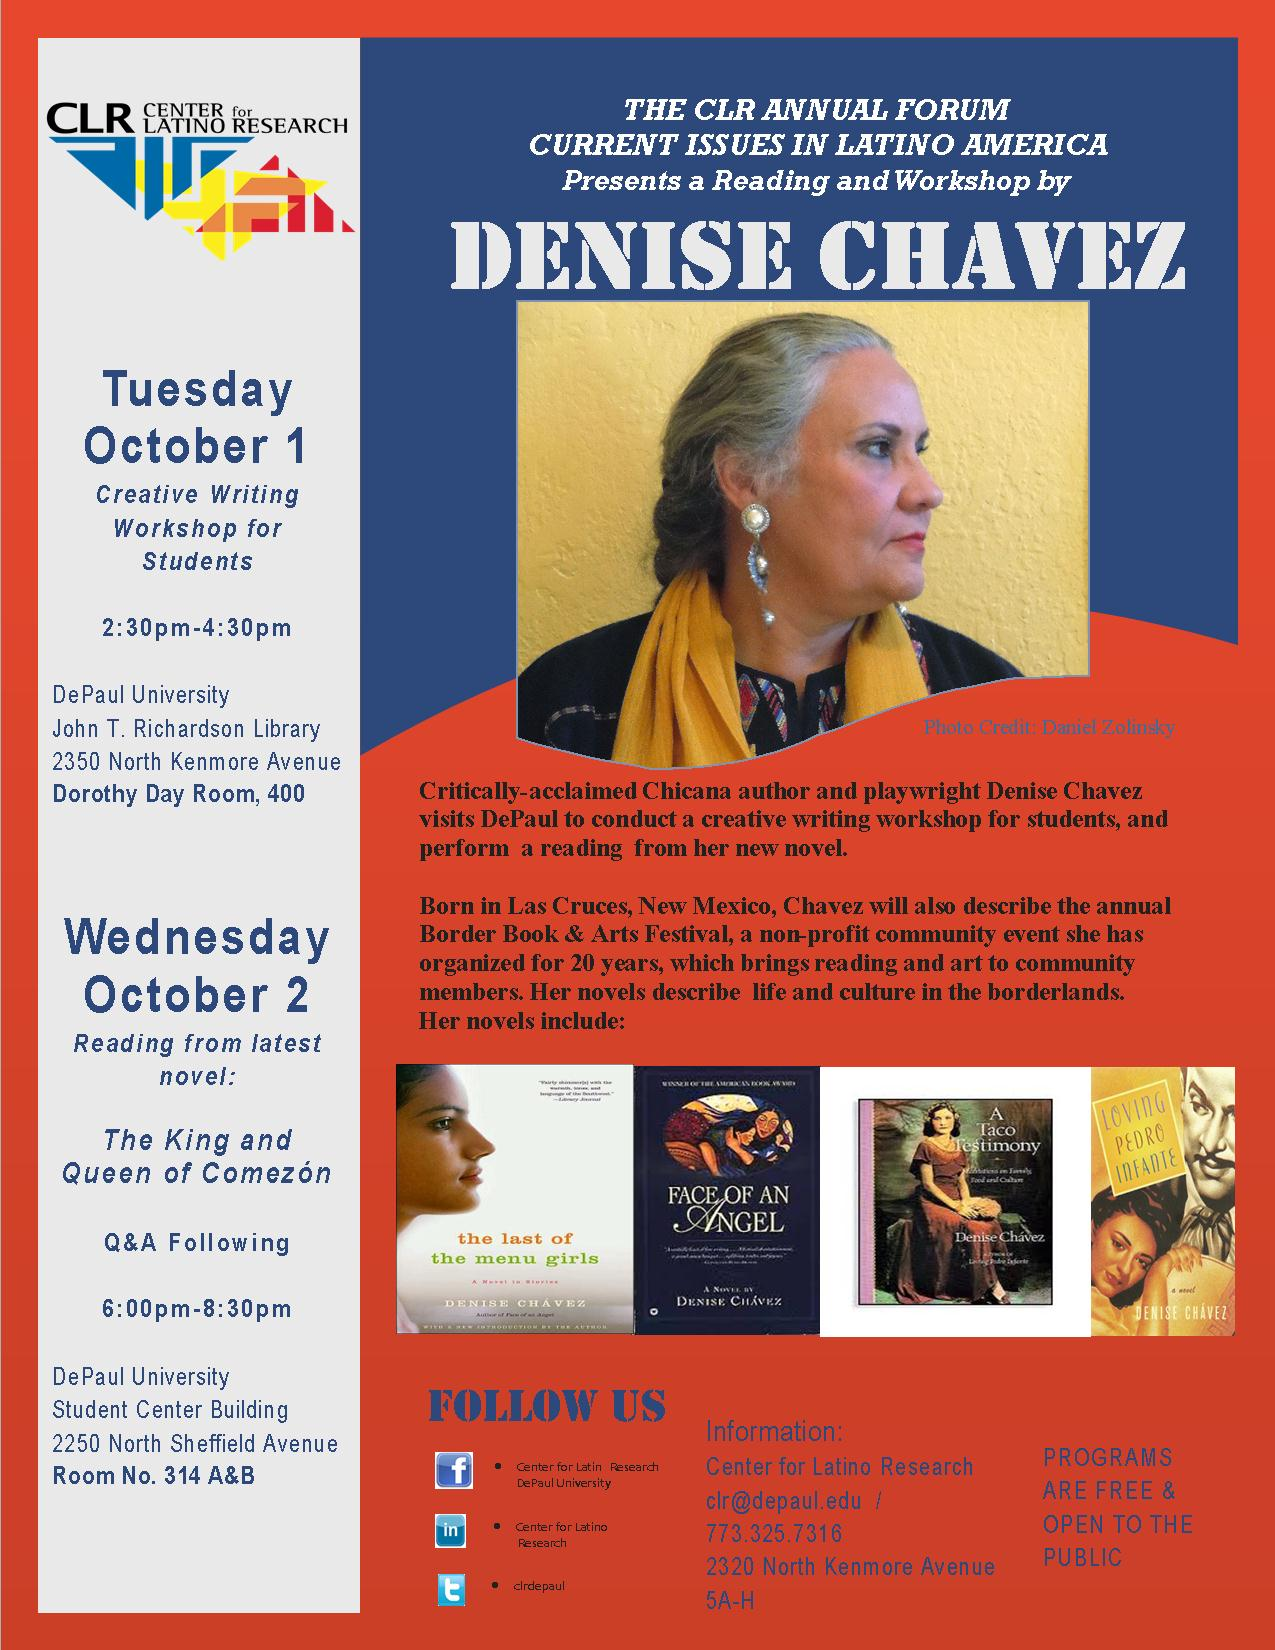 Current Issues in Latino America Forum  |  Author Denise Chavez